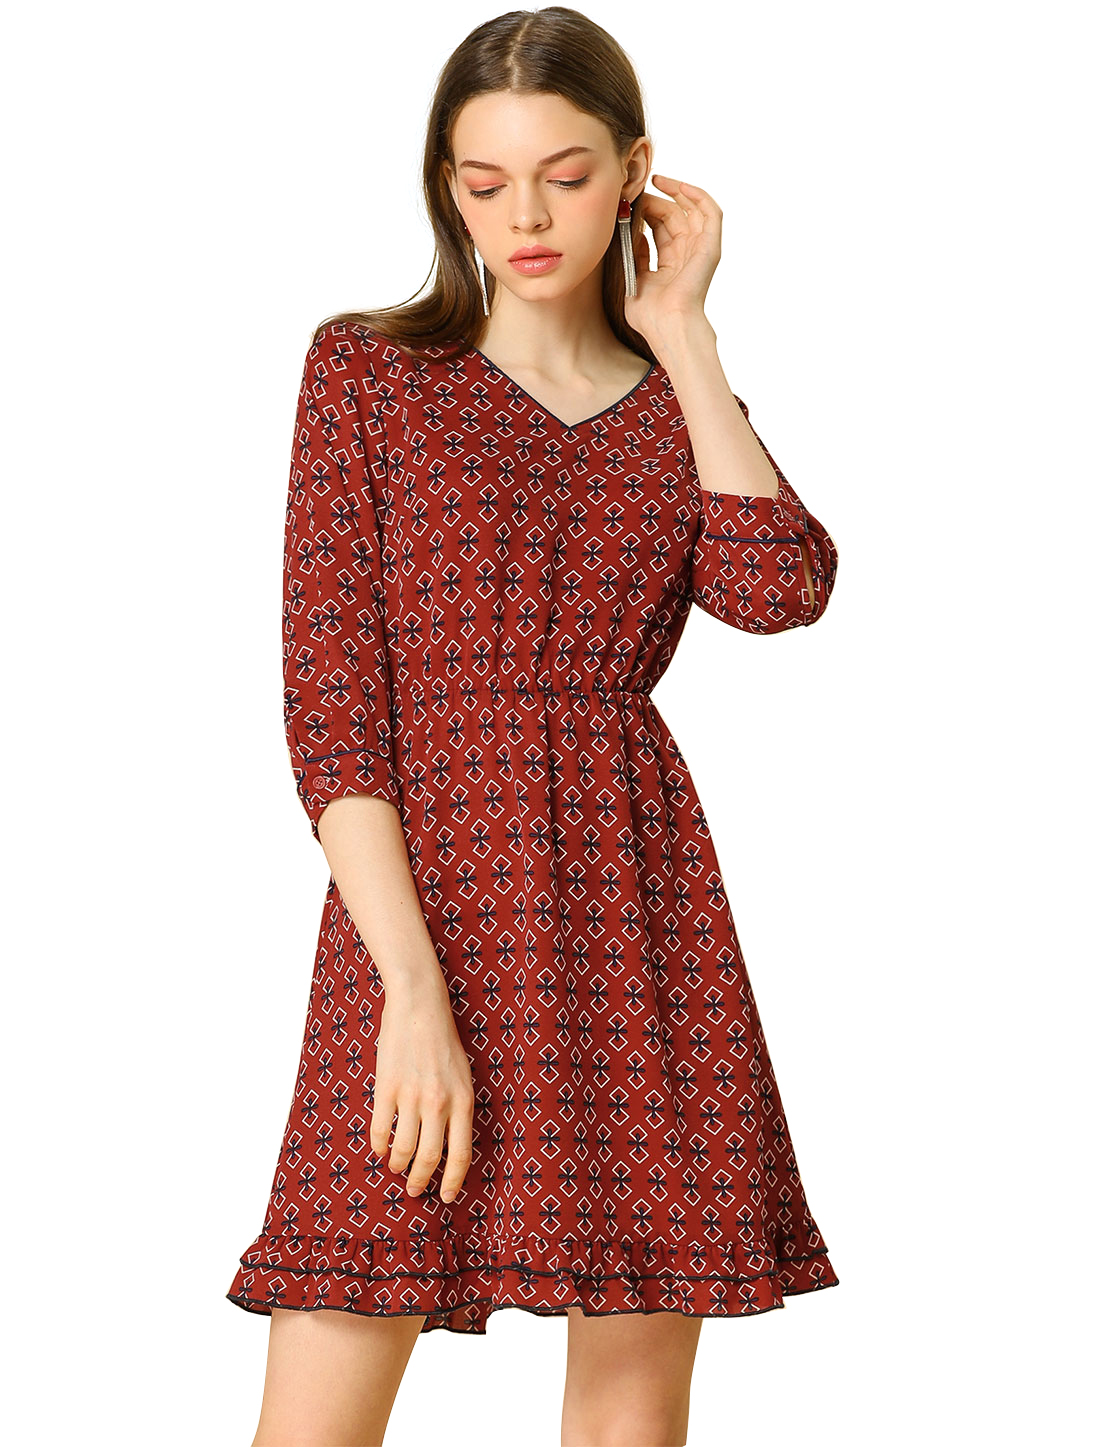 Women's 3/4 Sleeve V Neck Ruffle Hem Geometric Motifs Flare Chiffon Dress Red S